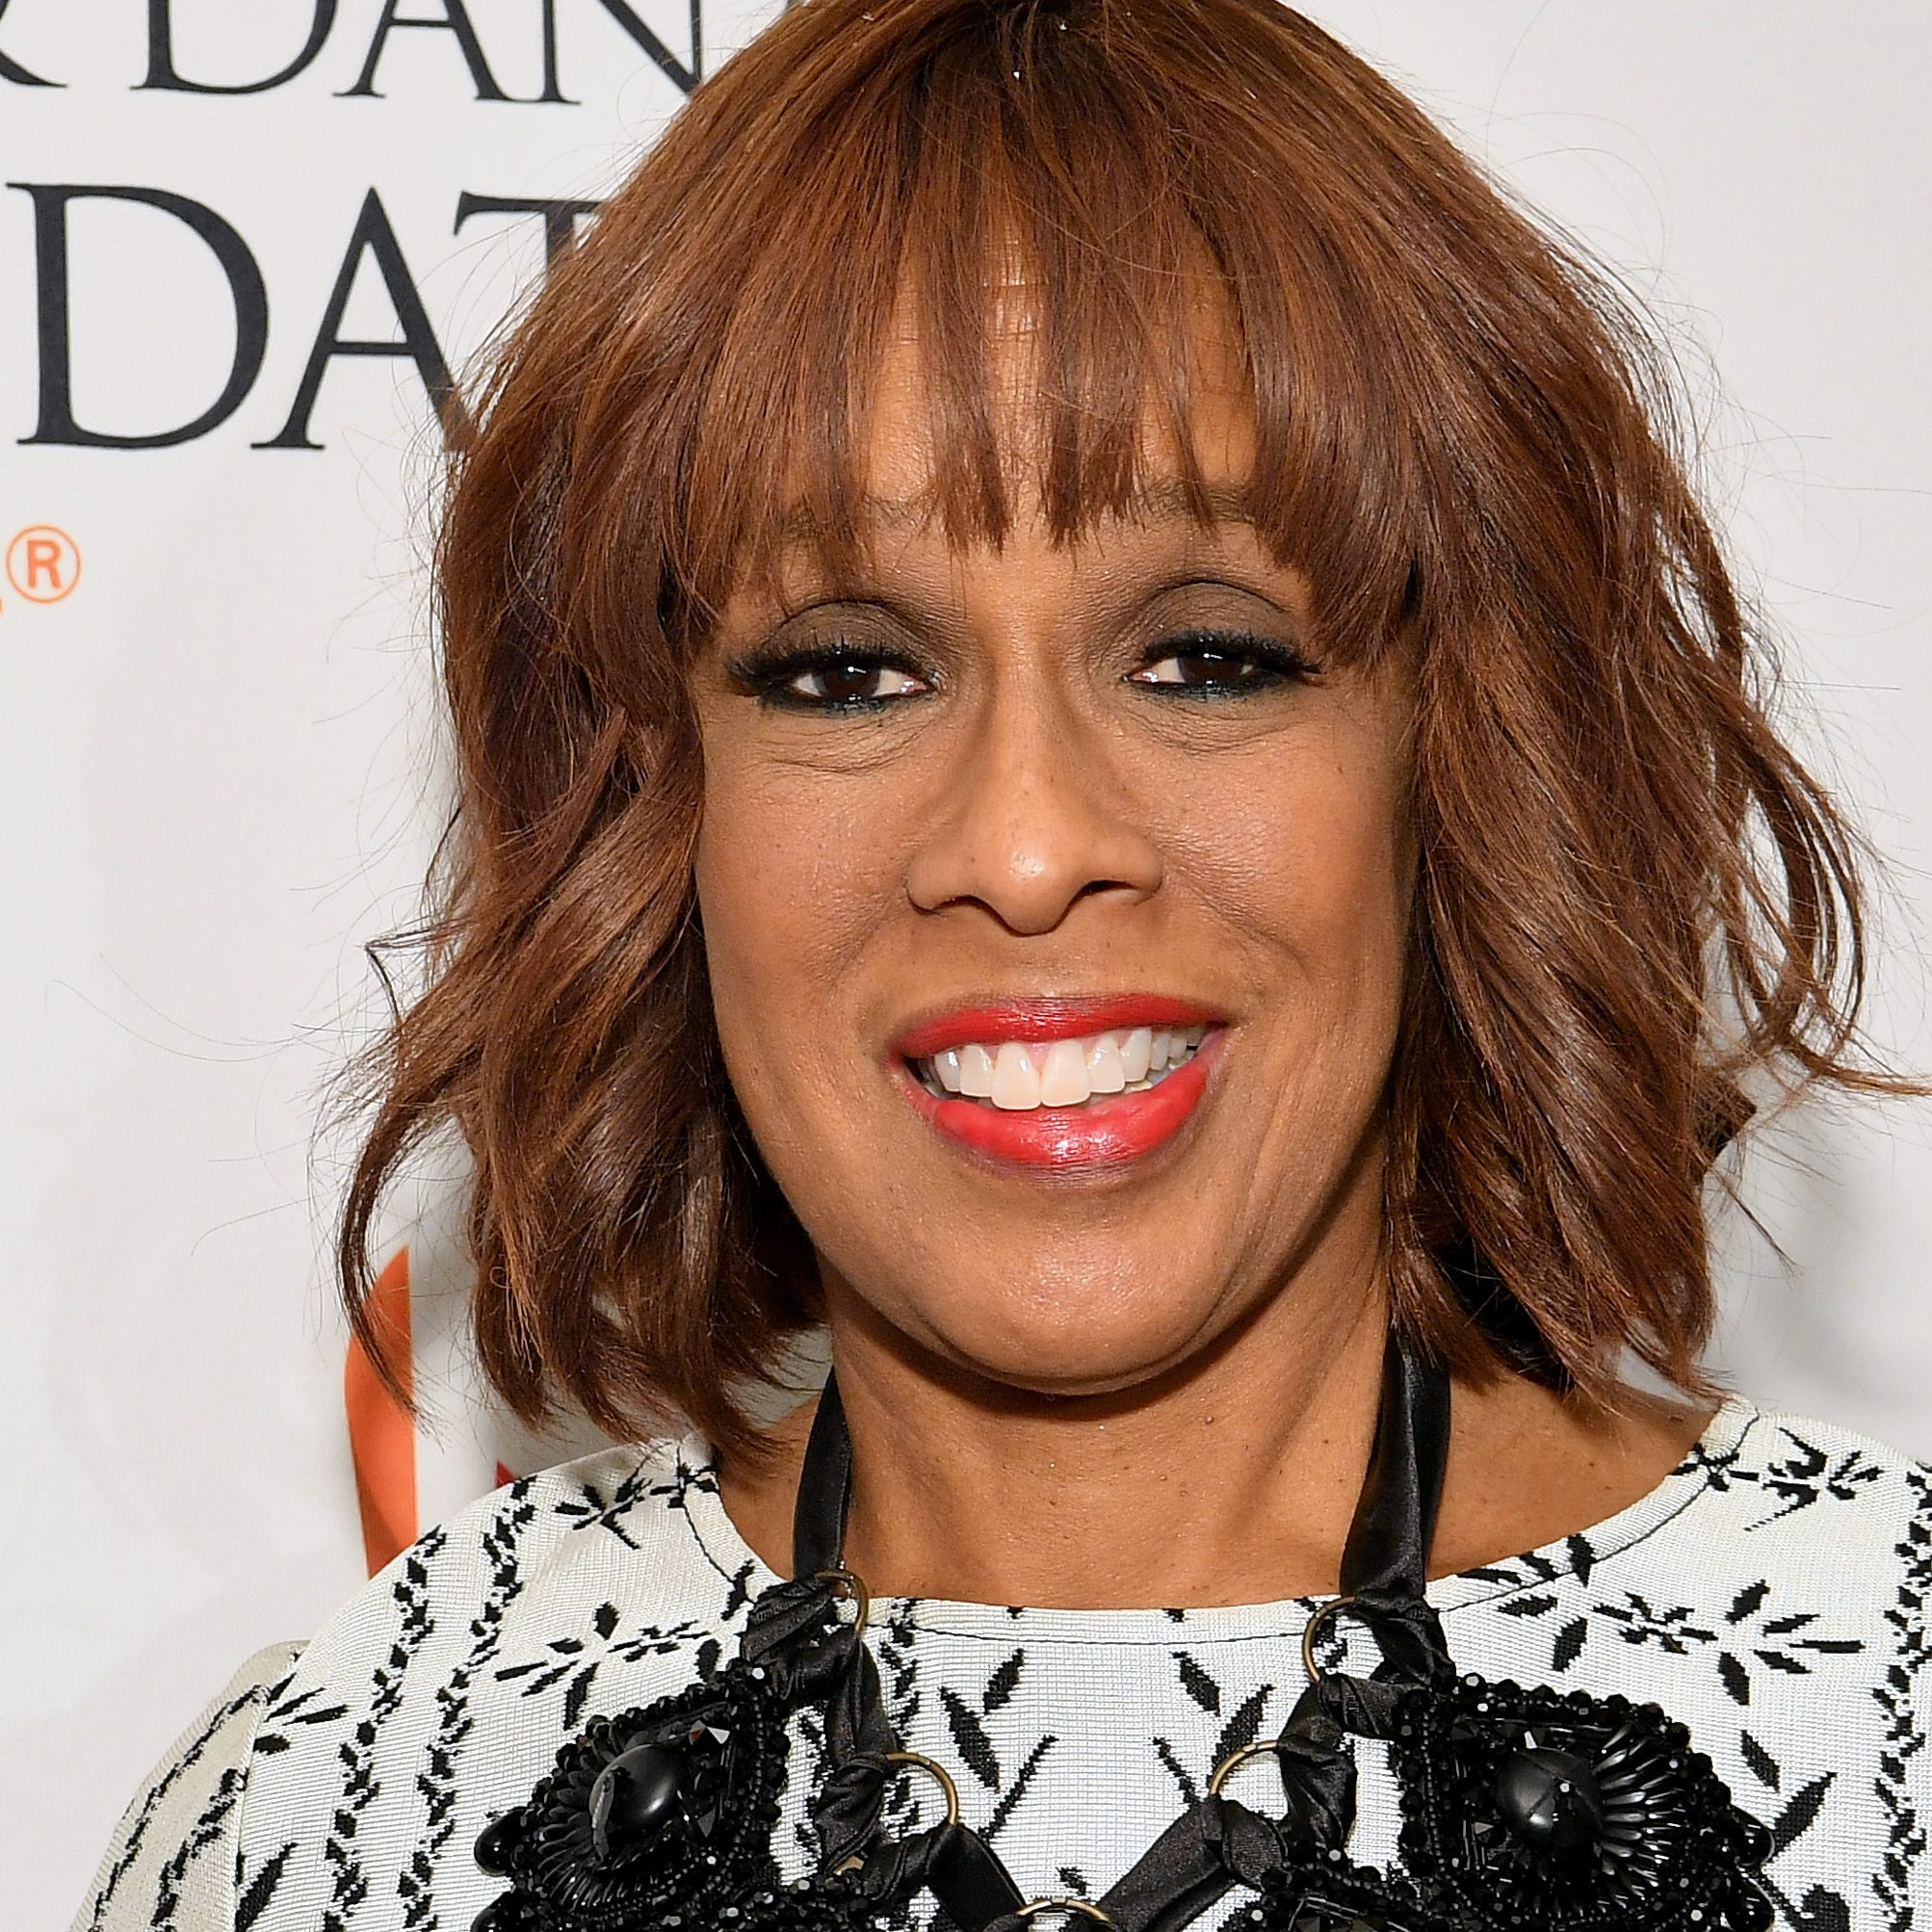 'I'm so irritated by this': A heated Gayle King defends 'Baby, It's Cold Outside'